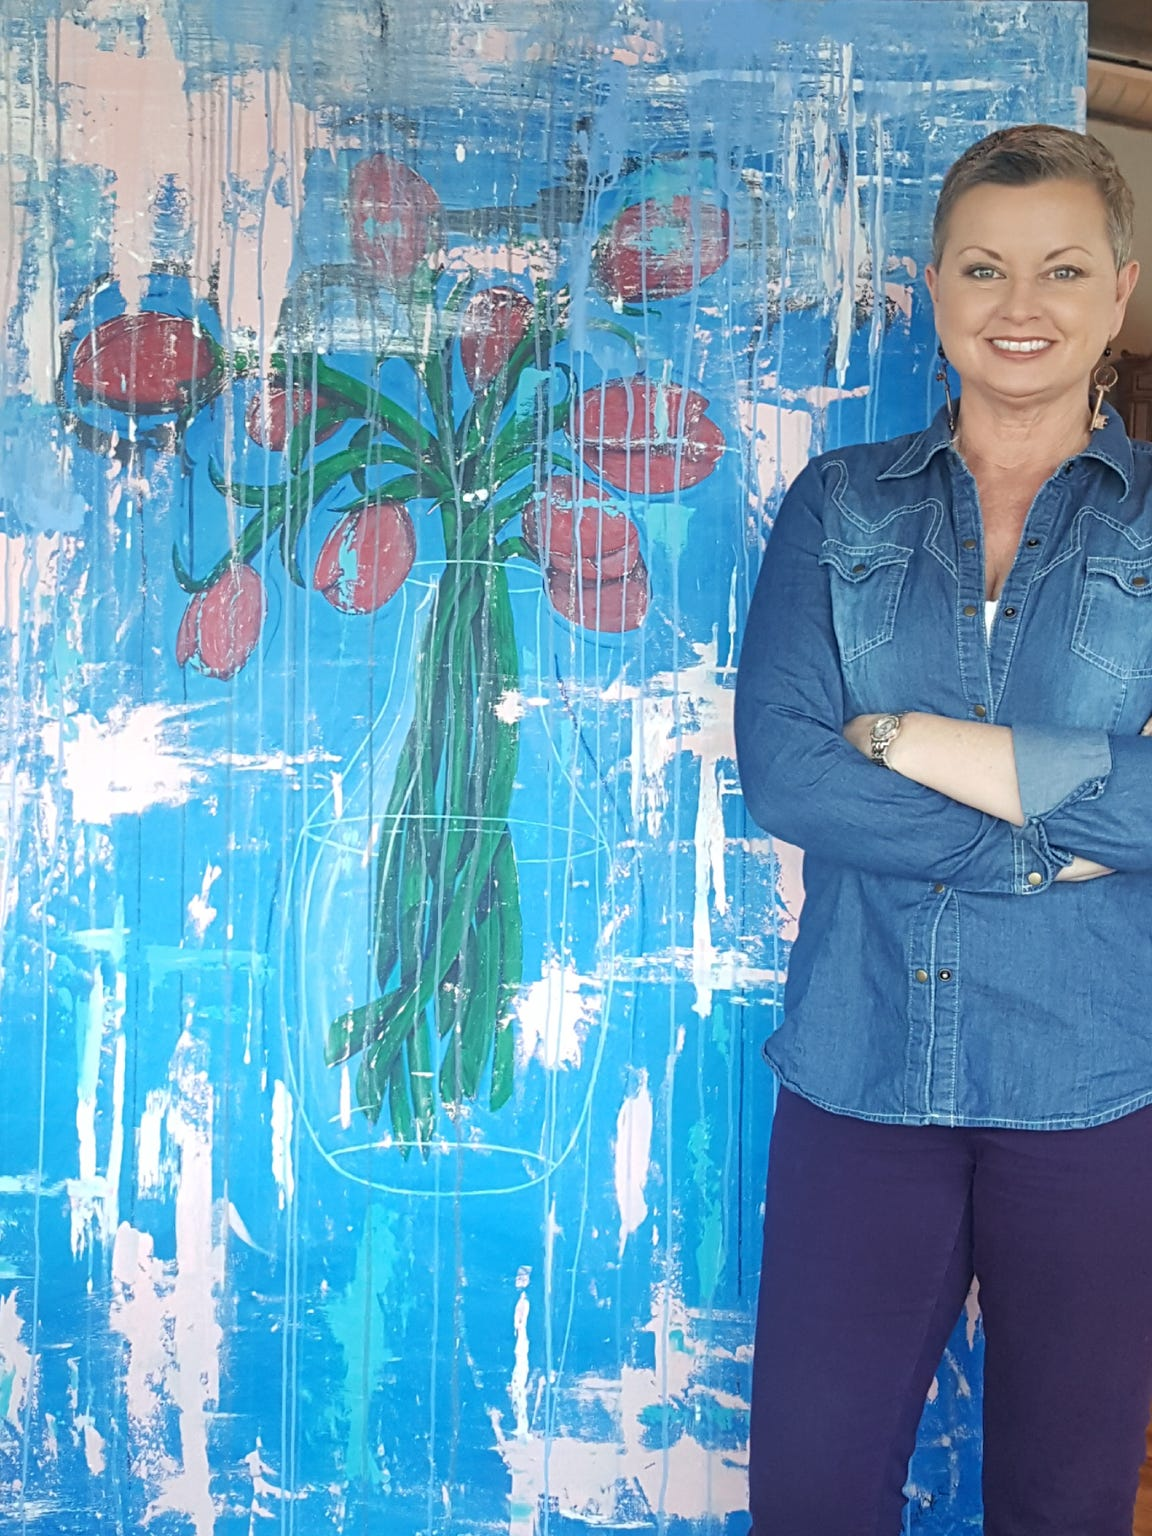 Cheryl Votzmeyer, artist and education director at